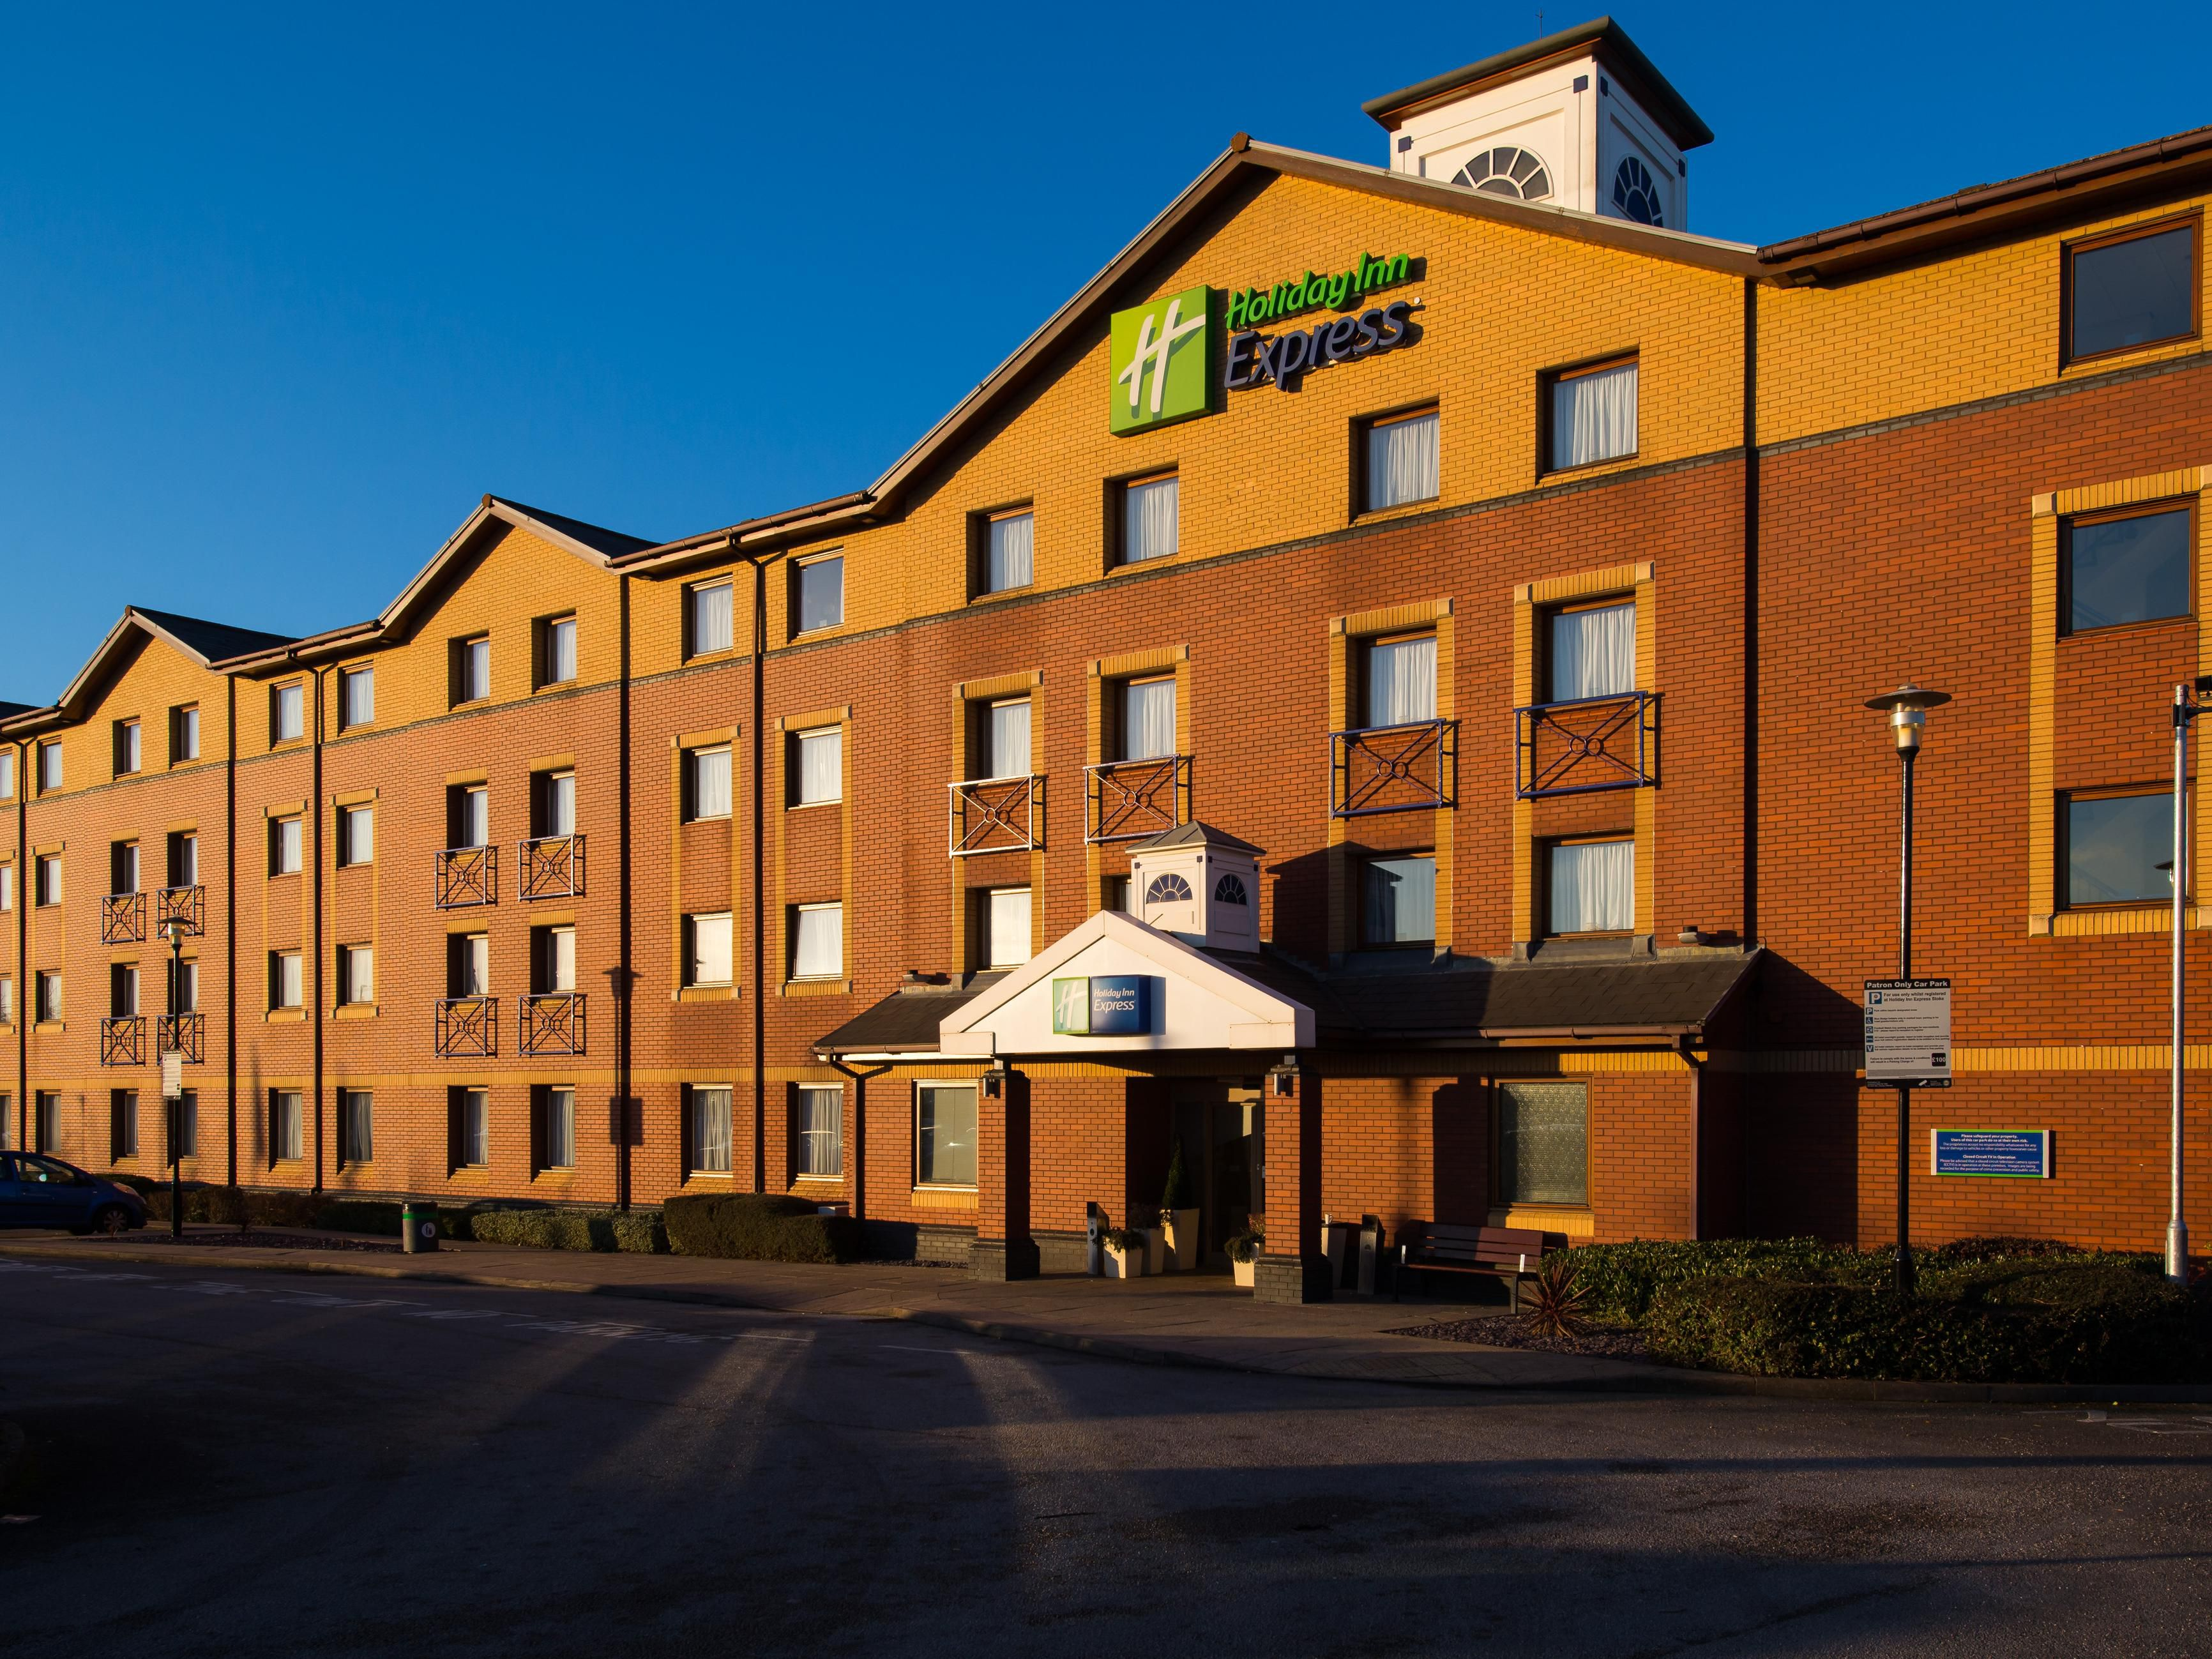 A great night's sleep is guaranteed at our hotel in Stoke on Trent